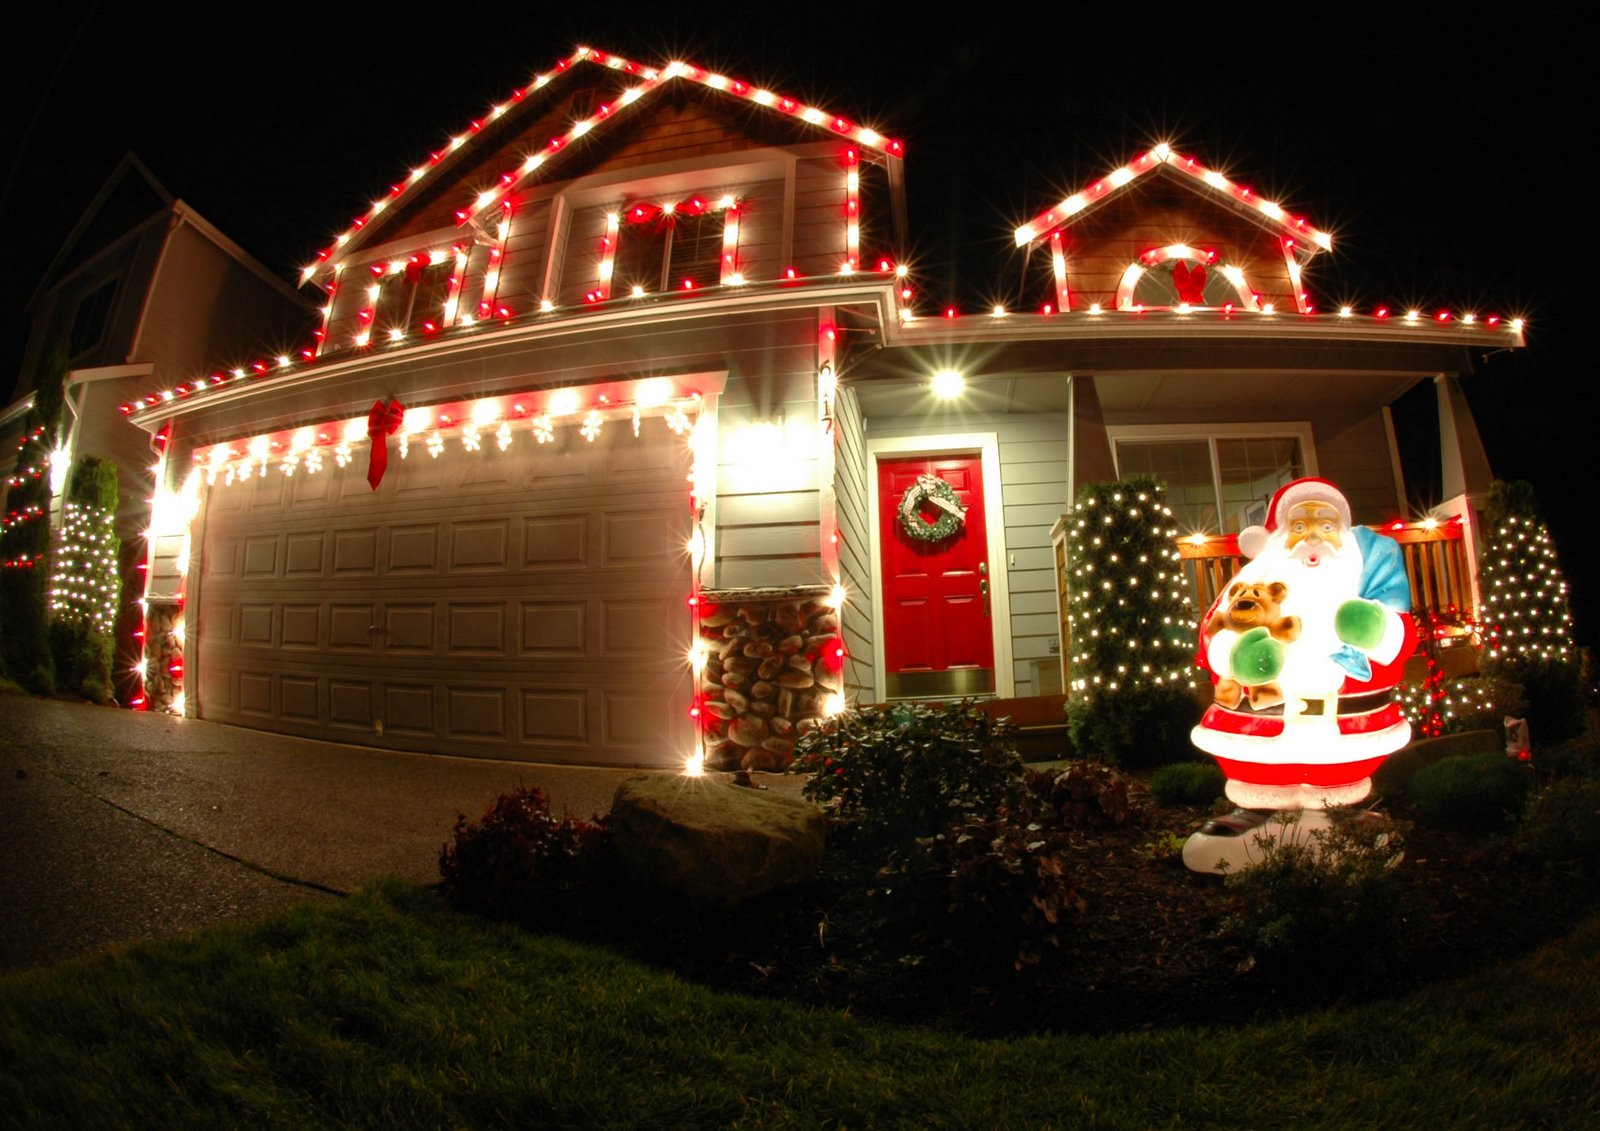 candy-cane-outdoor-lights-photo-9